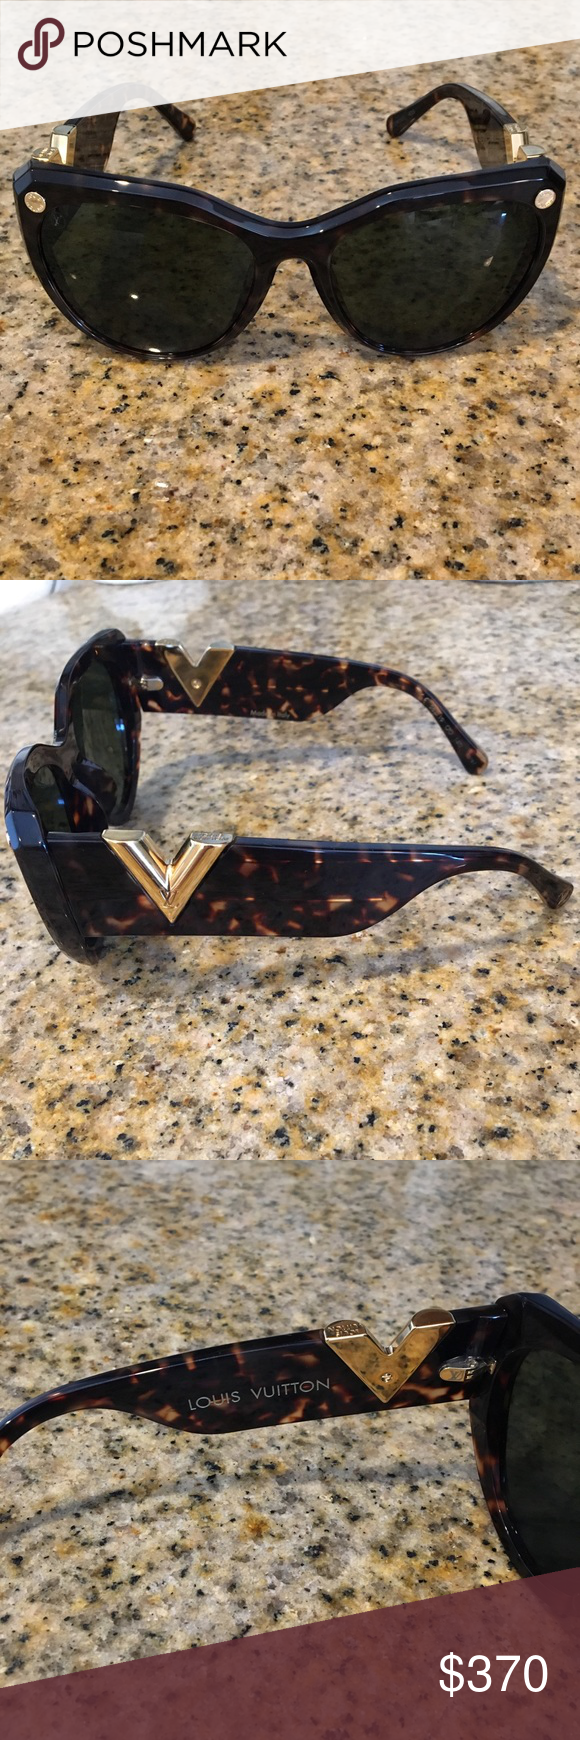 2c02385f3794c Authentic Louis Vuitton My Fair Lady sunglasses My Fair Lady Louis Vuitton  tortoise sunglasses. Excellent condition no scratches. These are sold for   515.00 ...